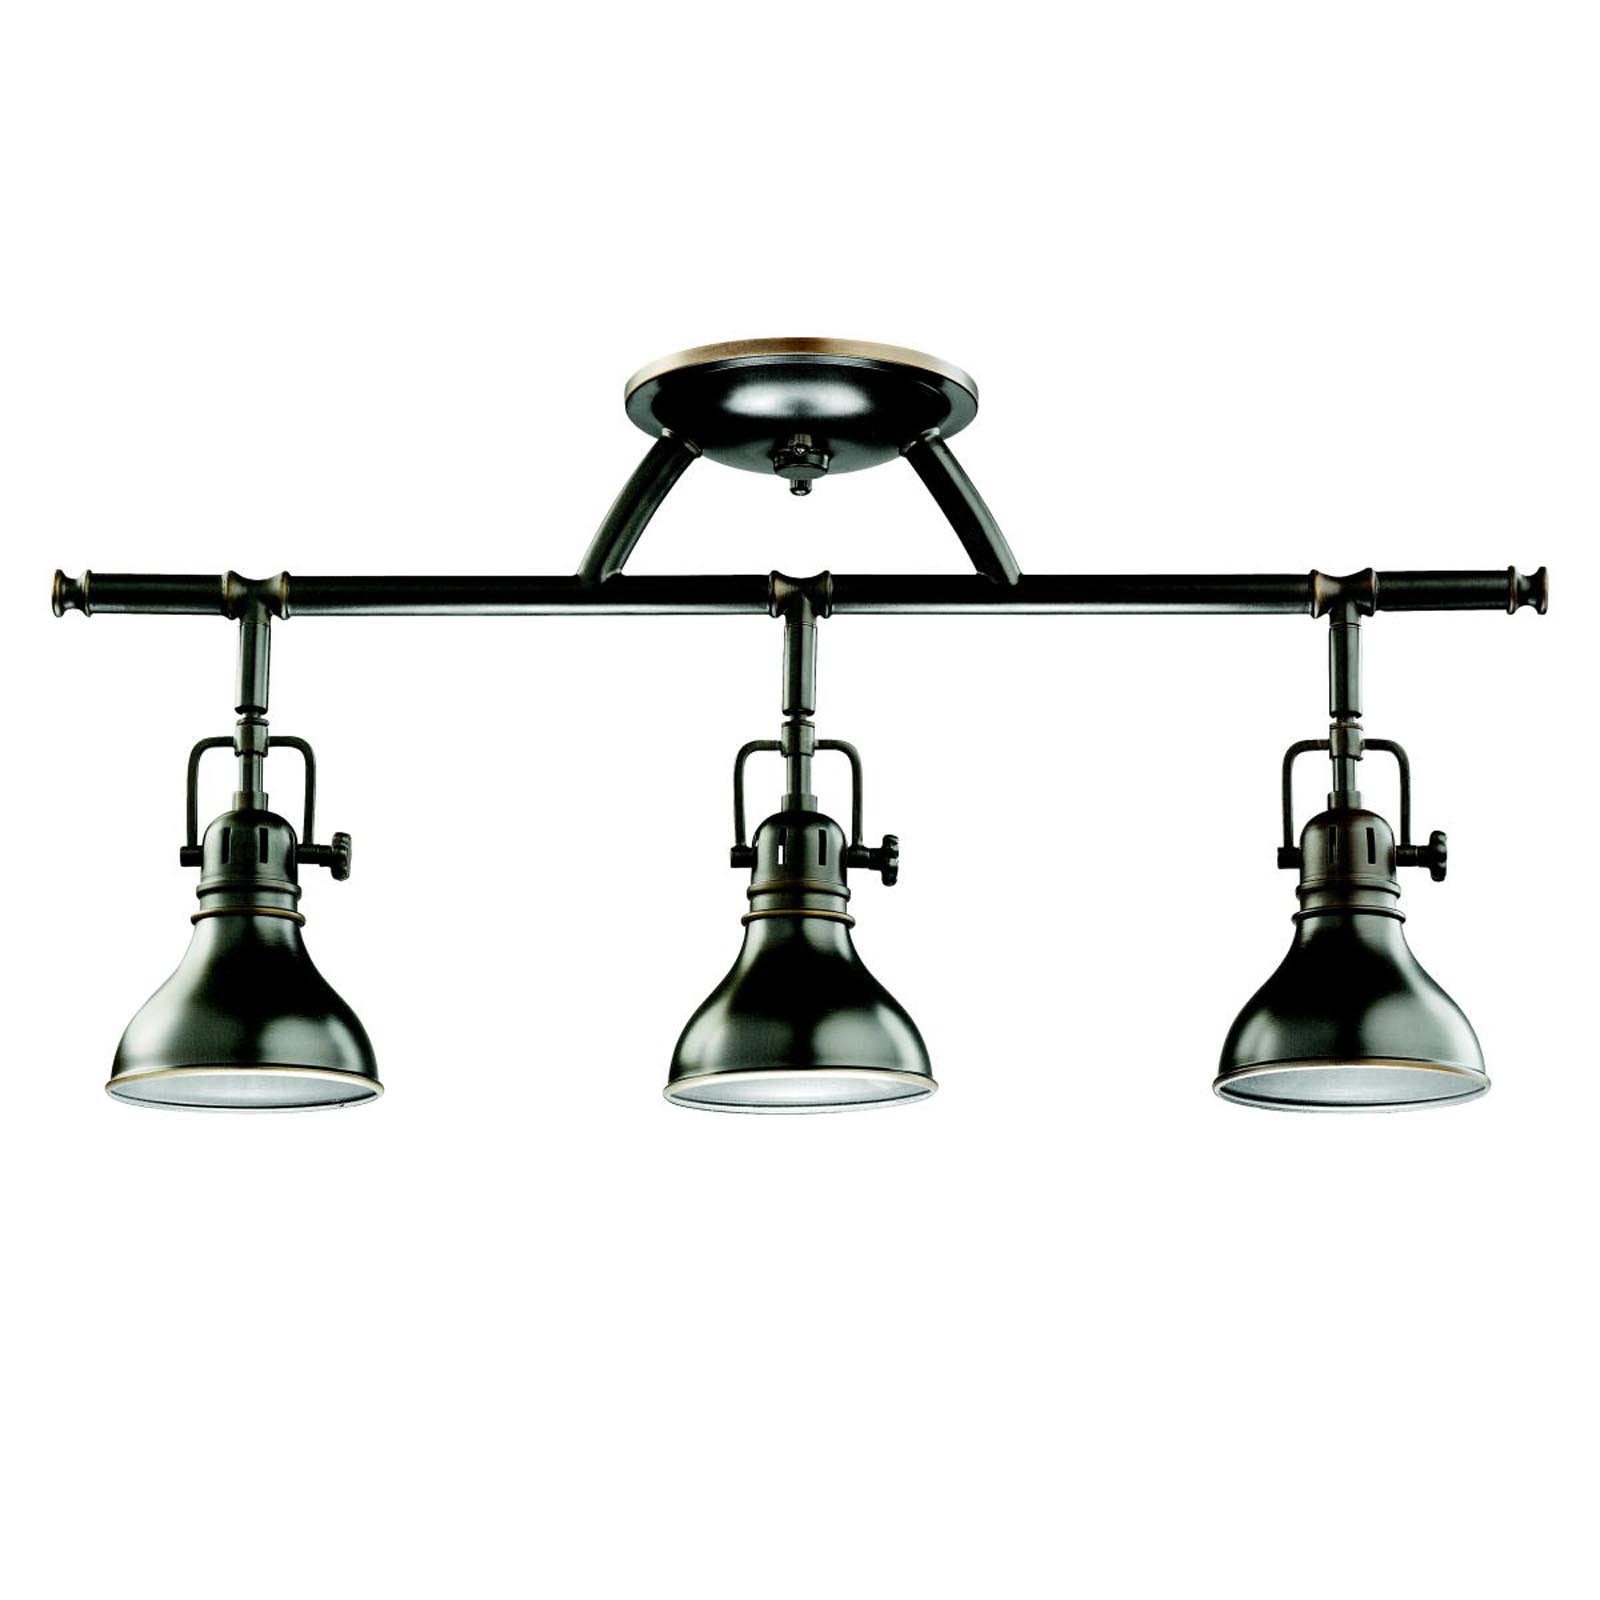 Kichler Hatteras Bay 7050 Ceiling Track Light